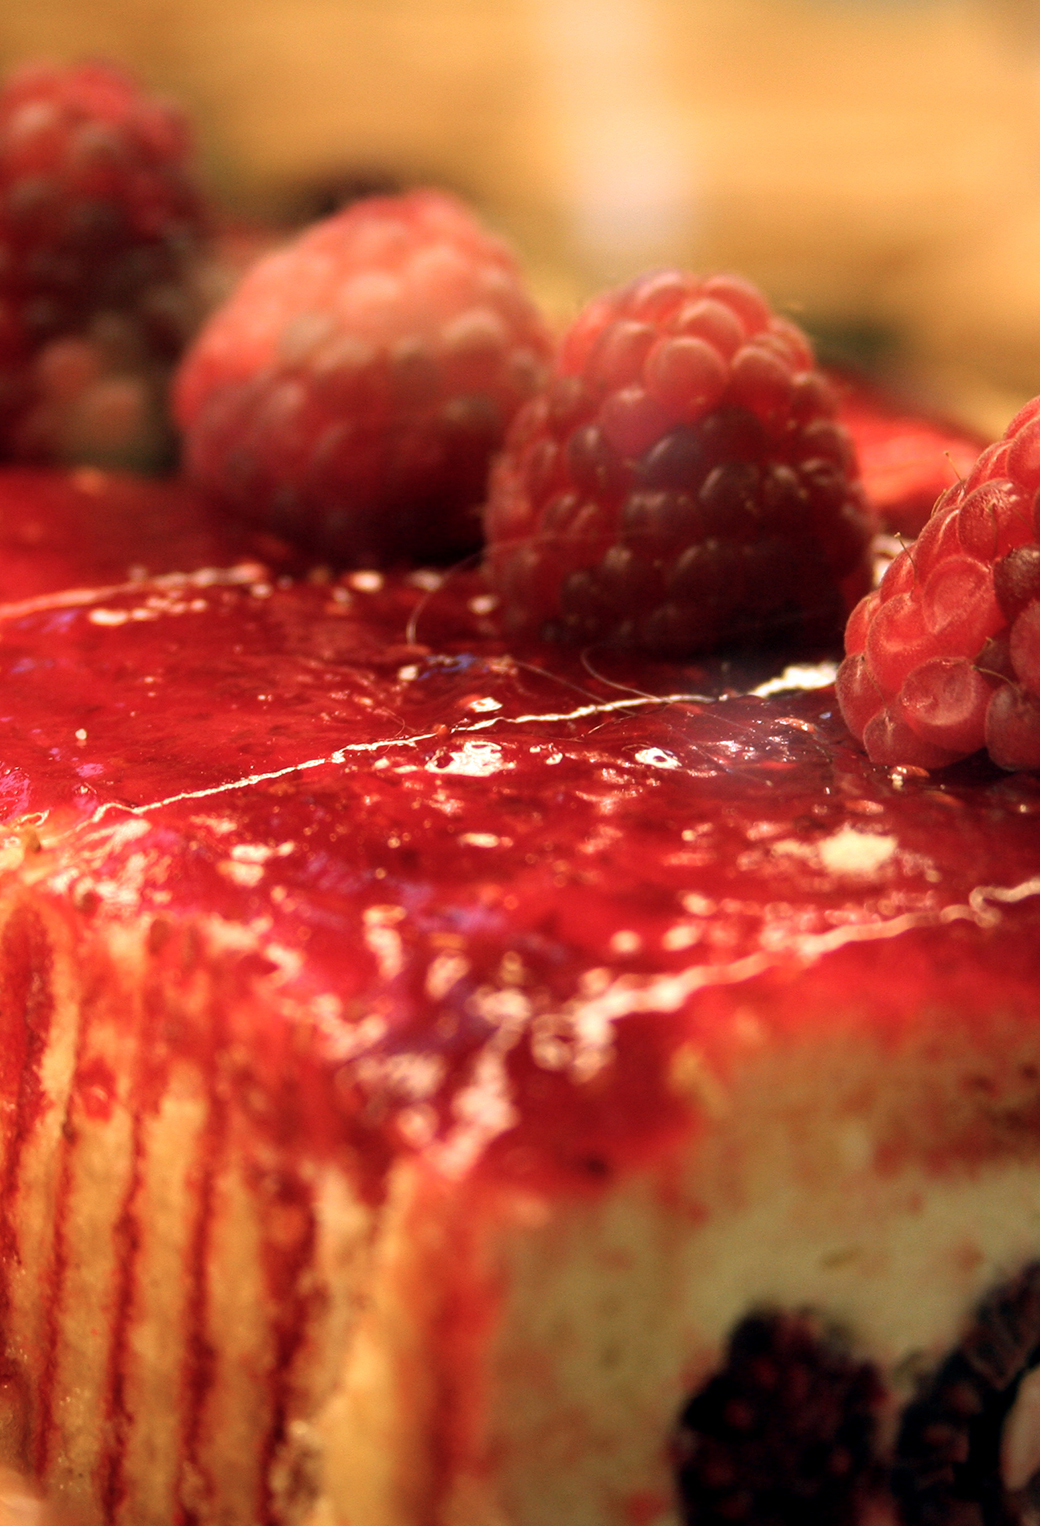 Raspberry Cake 3Wallpapers iPhone Parallax Raspberry Cake